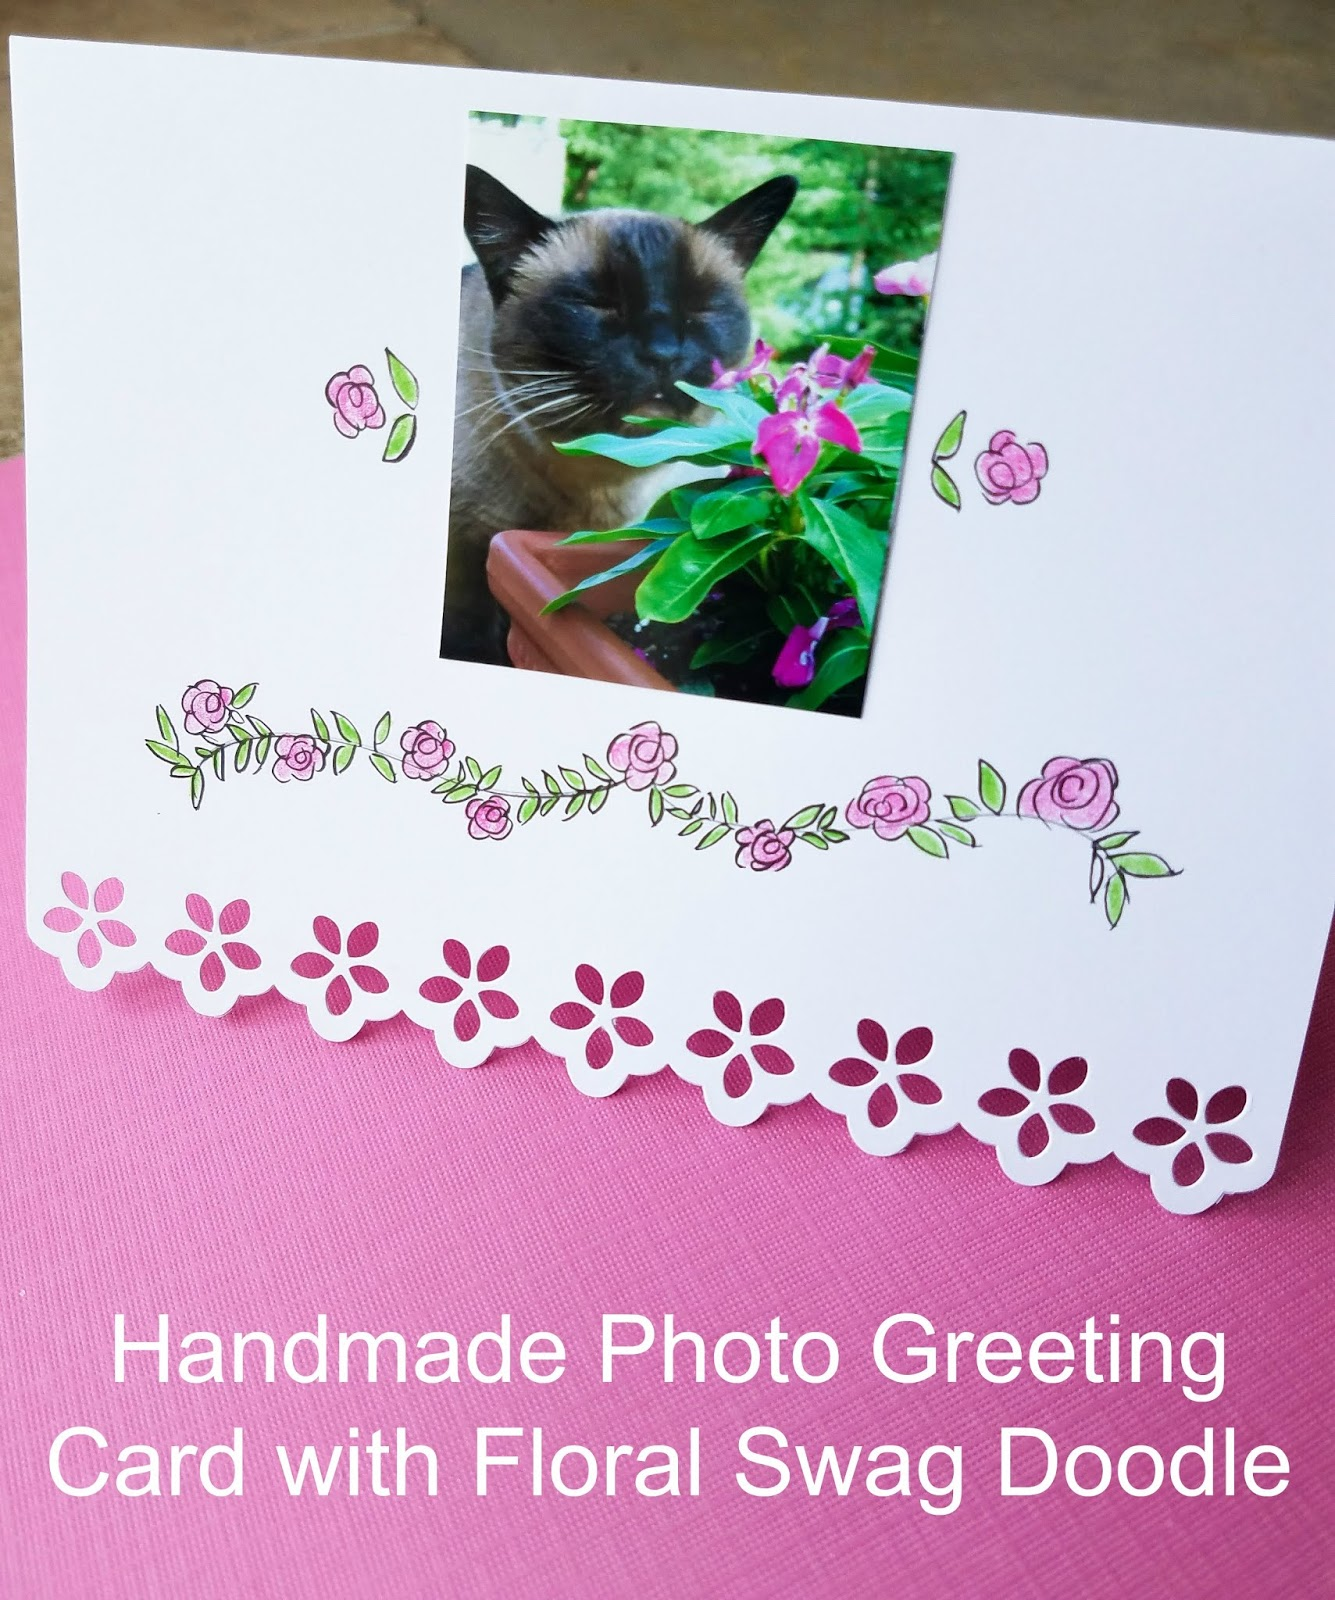 Handmade Photo Greeting Card With Floral Swag Doodle An Artful Mom